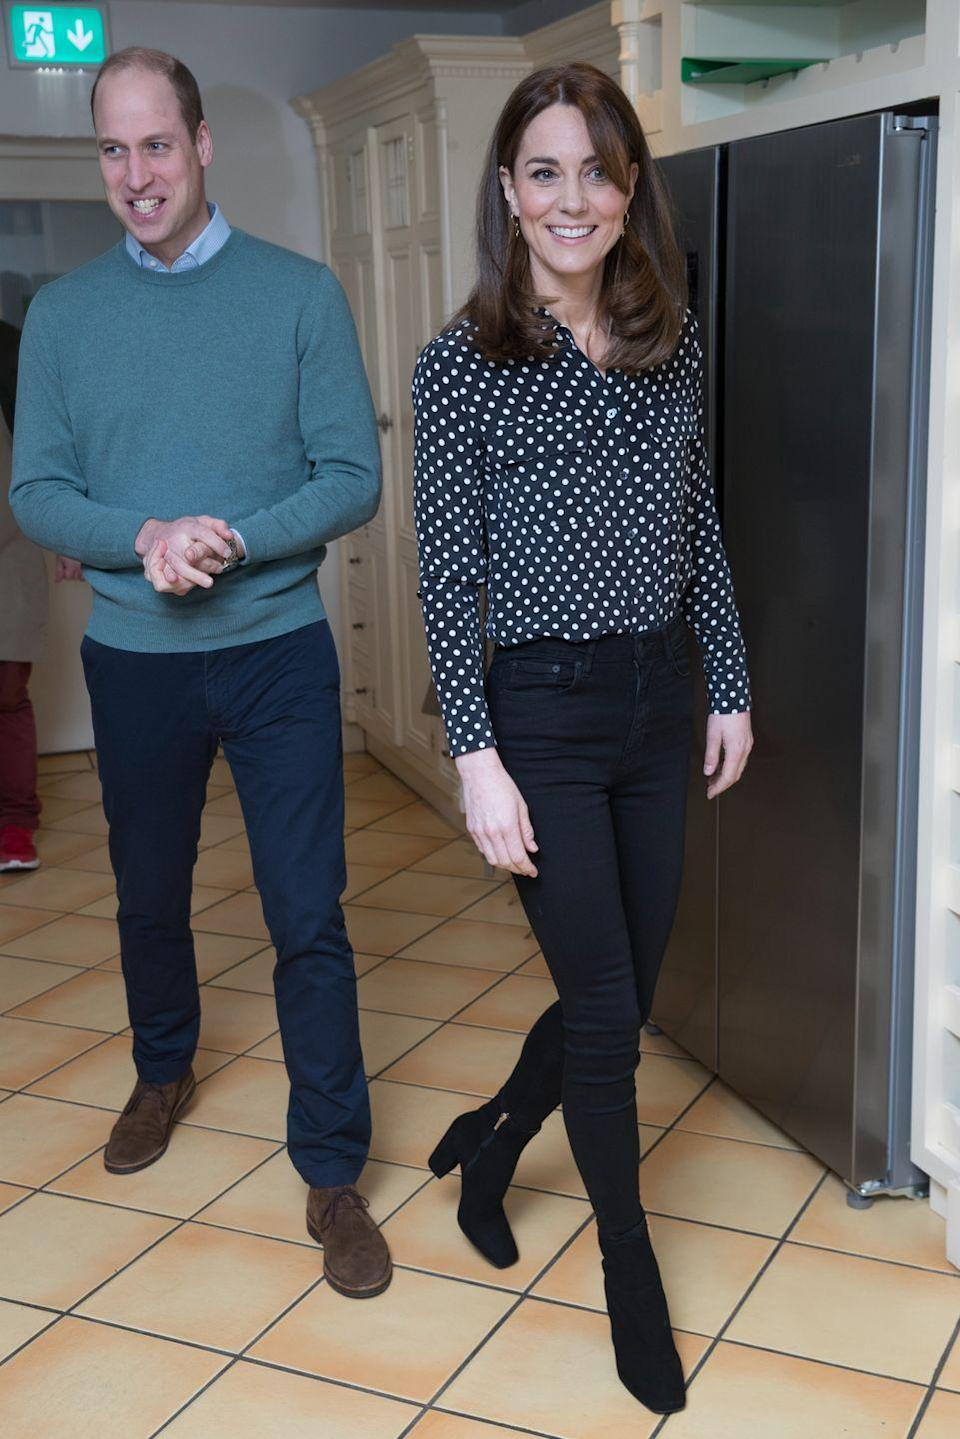 """<p>Kate wore a black and white polka dot Equipment blouse (shop it <a href=""""https://go.redirectingat.com?id=74968X1596630&url=https%3A%2F%2Fwww.shopbop.com%2Fslim-signature-blouse-equipment%2Fvp%2Fv%3D1%2F1573086384.htm%3Fgclid%3DCj0KCQiAwP3yBRCkARIsAABGiPop3wYaPYcp5n-przPOBRHqnLAnOhdfXzQbXB0HzgXMK4WyJwJtJ8MaApHeEALw_wcB%26currencyCode%3DUSD%26extid%3DSE_froogle_SC_usa%26extid%3Daffprg_linkshare_SB-TnL5HPStwNw%26cvosrc%3Dcse.google.EQUIP41183%26cvosrc%3Daffiliate.linkshare.TnL5HPStwNw%26cvo_campaign%3DSB_Google_USD%26ef_id%3DCj0KCQiAwP3yBRCkARIsAABGiPop3wYaPYcp5n-przPOBRHqnLAnOhdfXzQbXB0HzgXMK4WyJwJtJ8MaApHeEALw_wcB%253AG%253As%26affuid%3D74968X1524972Xfe6e186d3e29a9833f4a1bd3ac0908bc%26sharedid%3D42352%26subid1%3DTnL5HPStwNw-adkVnSMpm.k3qN5.0hA4aw&sref=https%3A%2F%2Fwww.townandcountrymag.com%2Fstyle%2Ffashion-trends%2Fnews%2Fg1633%2Fkate-middleton-fashion%2F"""" rel=""""nofollow noopener"""" target=""""_blank"""" data-ylk=""""slk:here"""" class=""""link rapid-noclick-resp"""">here</a>) to visit Savannah House, a charity residential facility in County Meath, Ireland. She paired the blouse with black skinny jeans and heeled booties and topped off the look with a <a href=""""https://www.townandcountrymag.com/society/tradition/a31222370/kate-middleton-white-coat-prince-william-jigsaw-ireland-photos/"""" rel=""""nofollow noopener"""" target=""""_blank"""" data-ylk=""""slk:cream Reiss coat"""" class=""""link rapid-noclick-resp"""">cream Reiss coat</a>. </p>"""